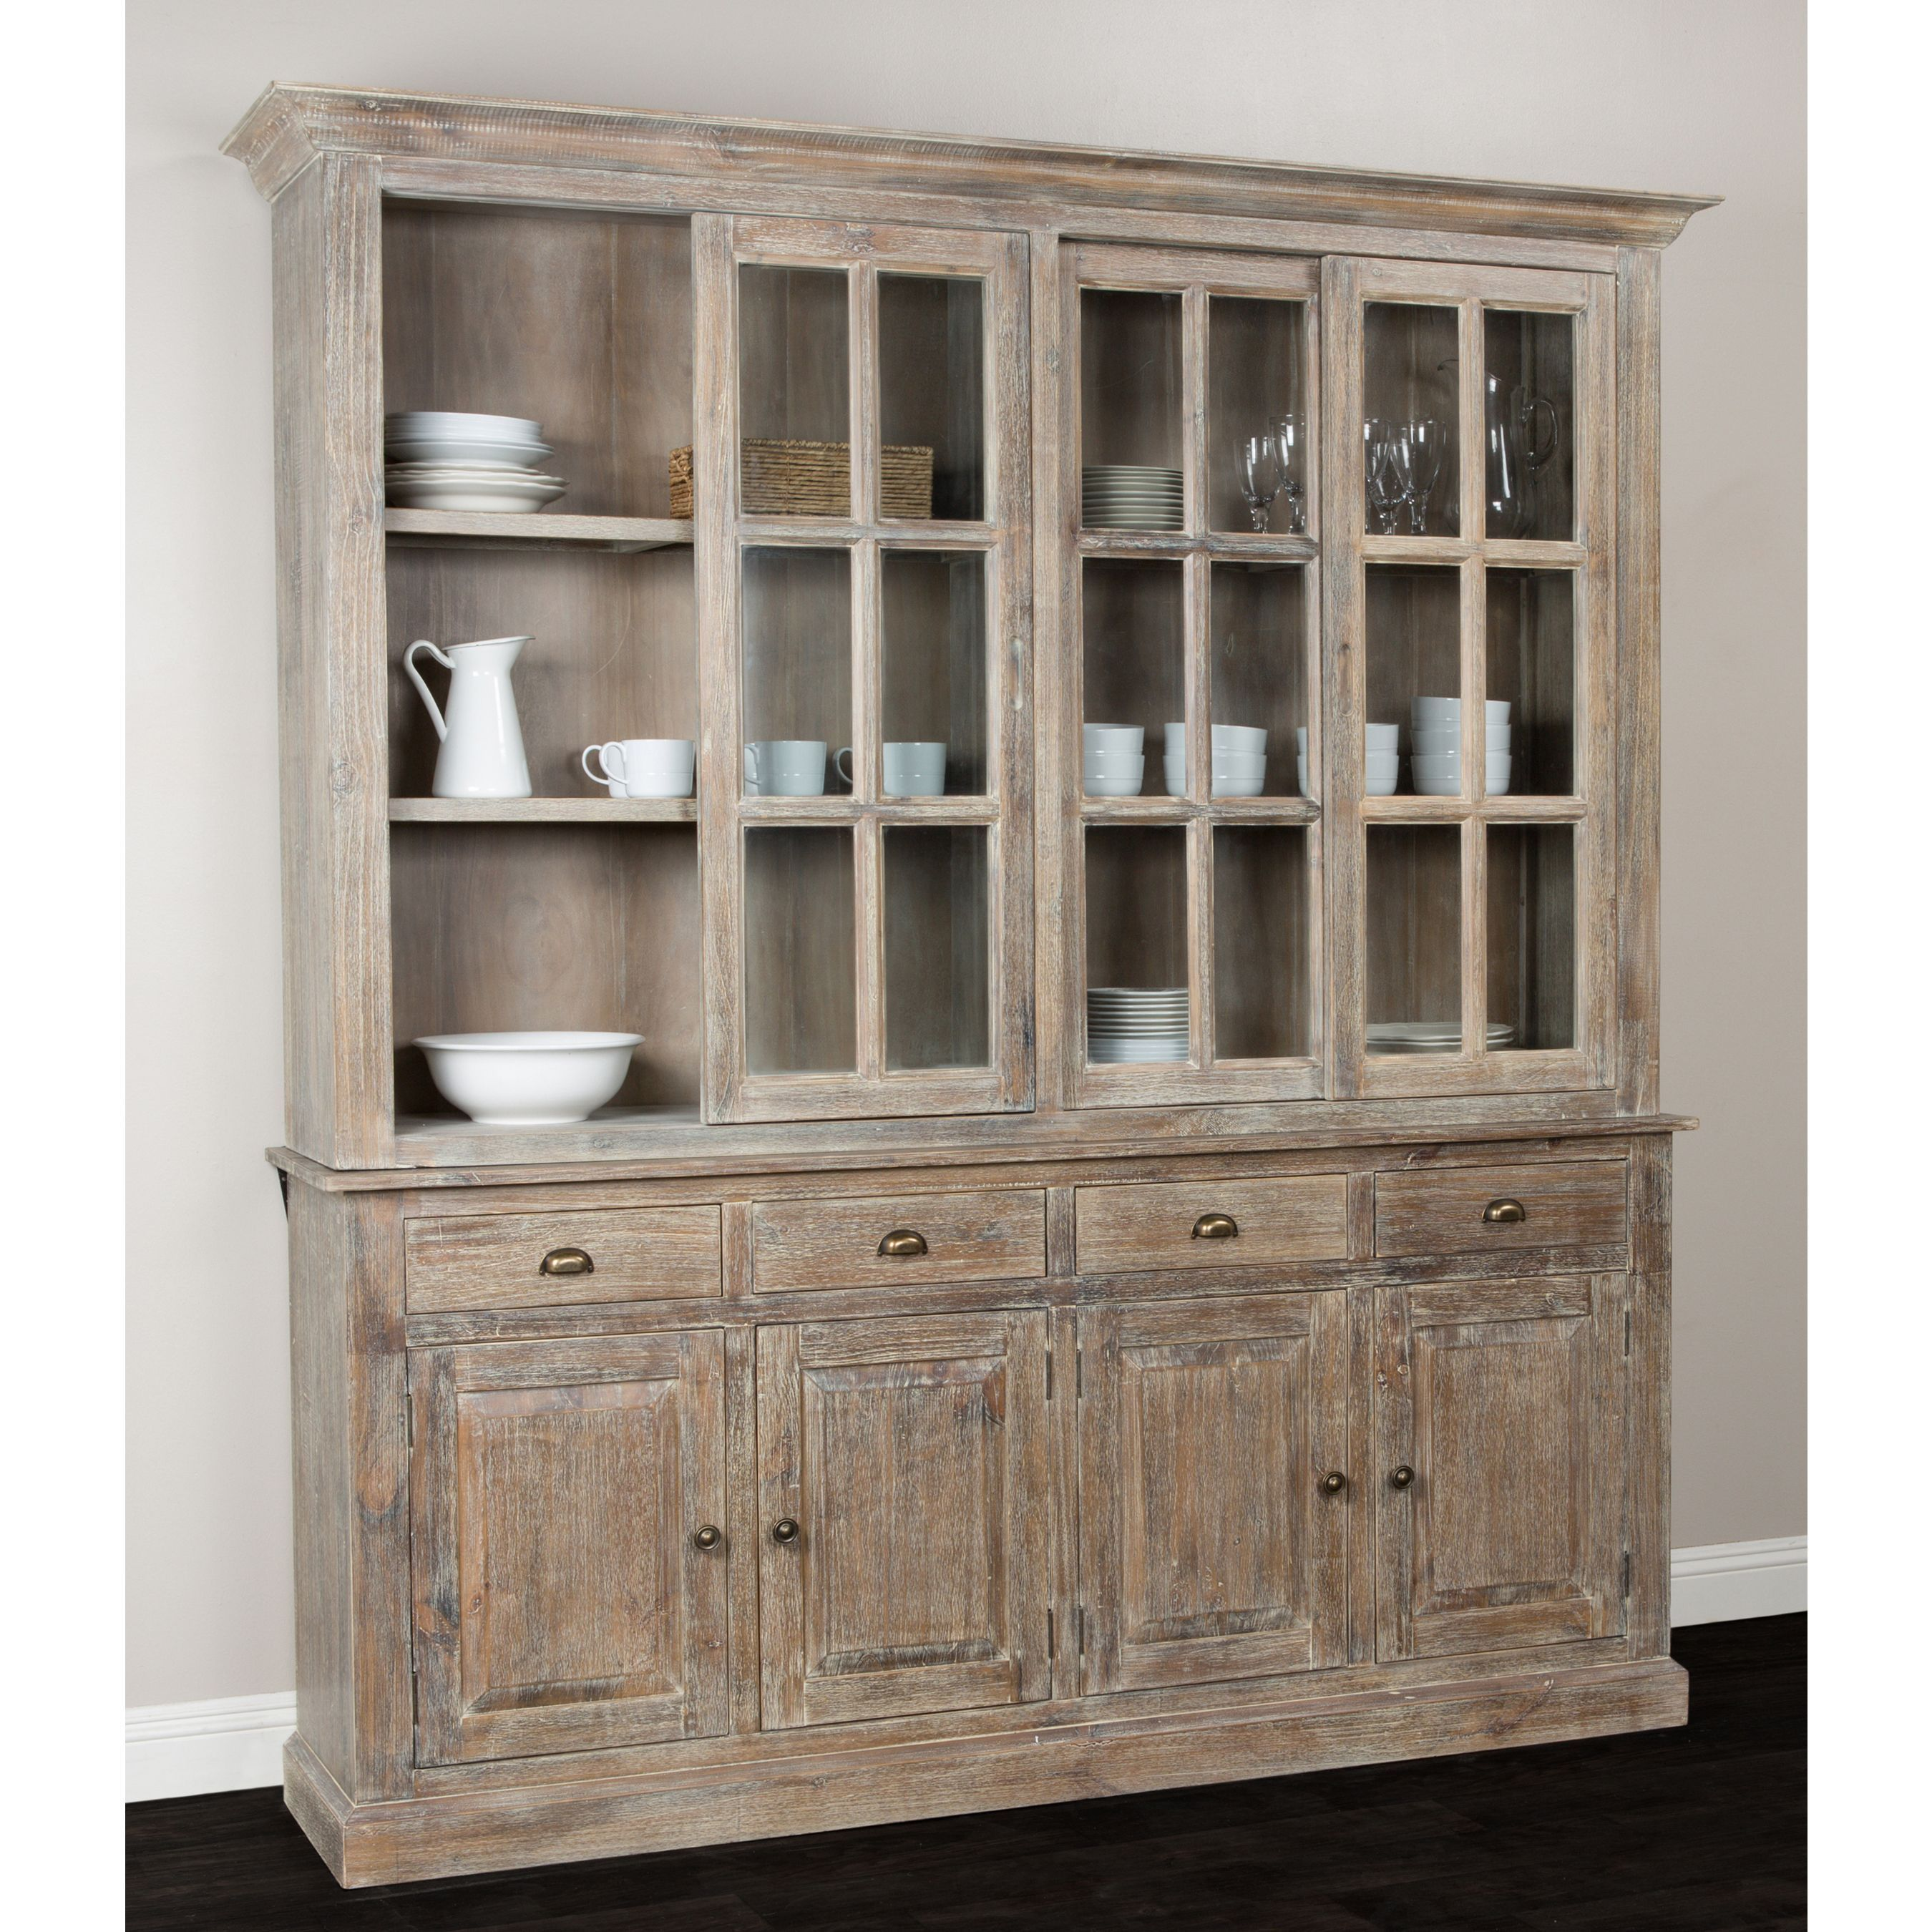 Rockie wood china cabinet by kosas home 4 sliding door cabinet brown